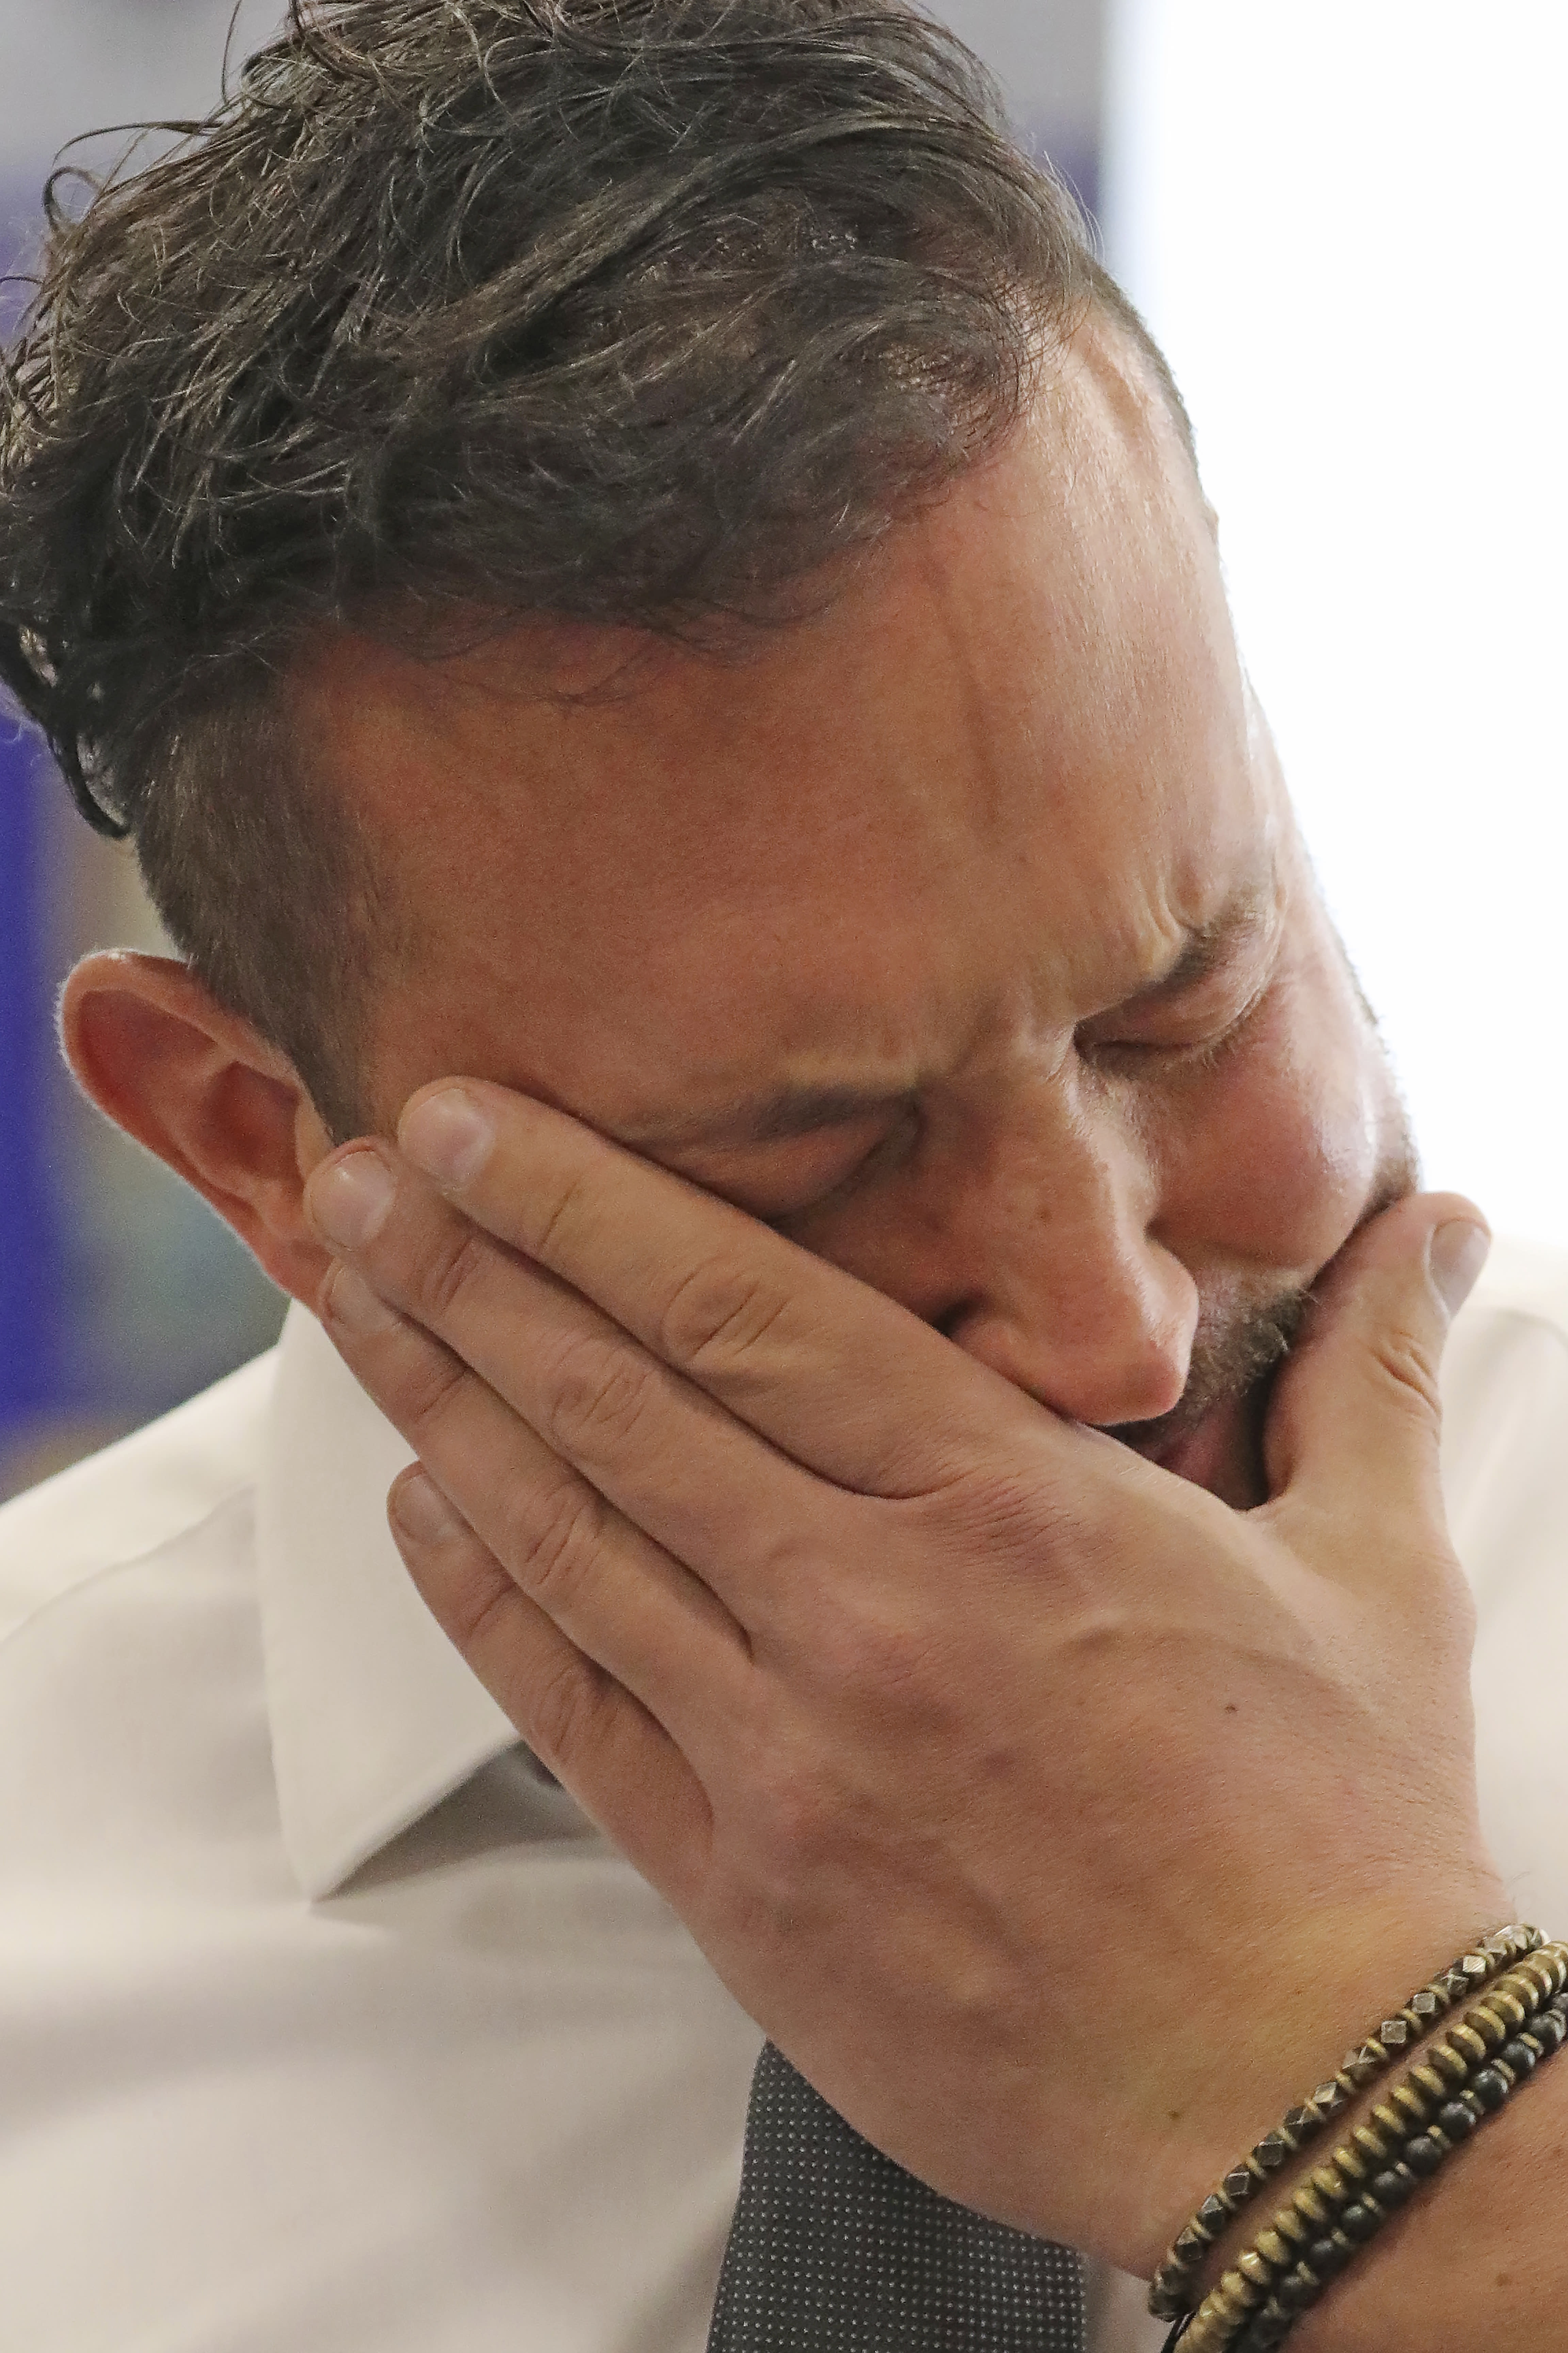 """FILE - In this Sept. 26, 2019, file photo, Justin Utley fights back his emotions as he remembers conversion therapy following a hearing in Salt Lake City. The Church of Jesus of Christ of Latter-day Saints is opposing a proposed ban on conversion therapy in Utah, just months after it said it wouldn't stand in the way of a similar rule under consideration. The church said in a statement posted Tuesday, Oct. 15, 2019, night that the regulatory rule prohibiting Utah psychologists from engaging in LBGTQ conversion therapy with minors would fail to safeguard """"religious beliefs"""" and doesn't account for """"important realities of gender identity in the development of children."""" (AP Photo/Rick Bowmer, File)"""